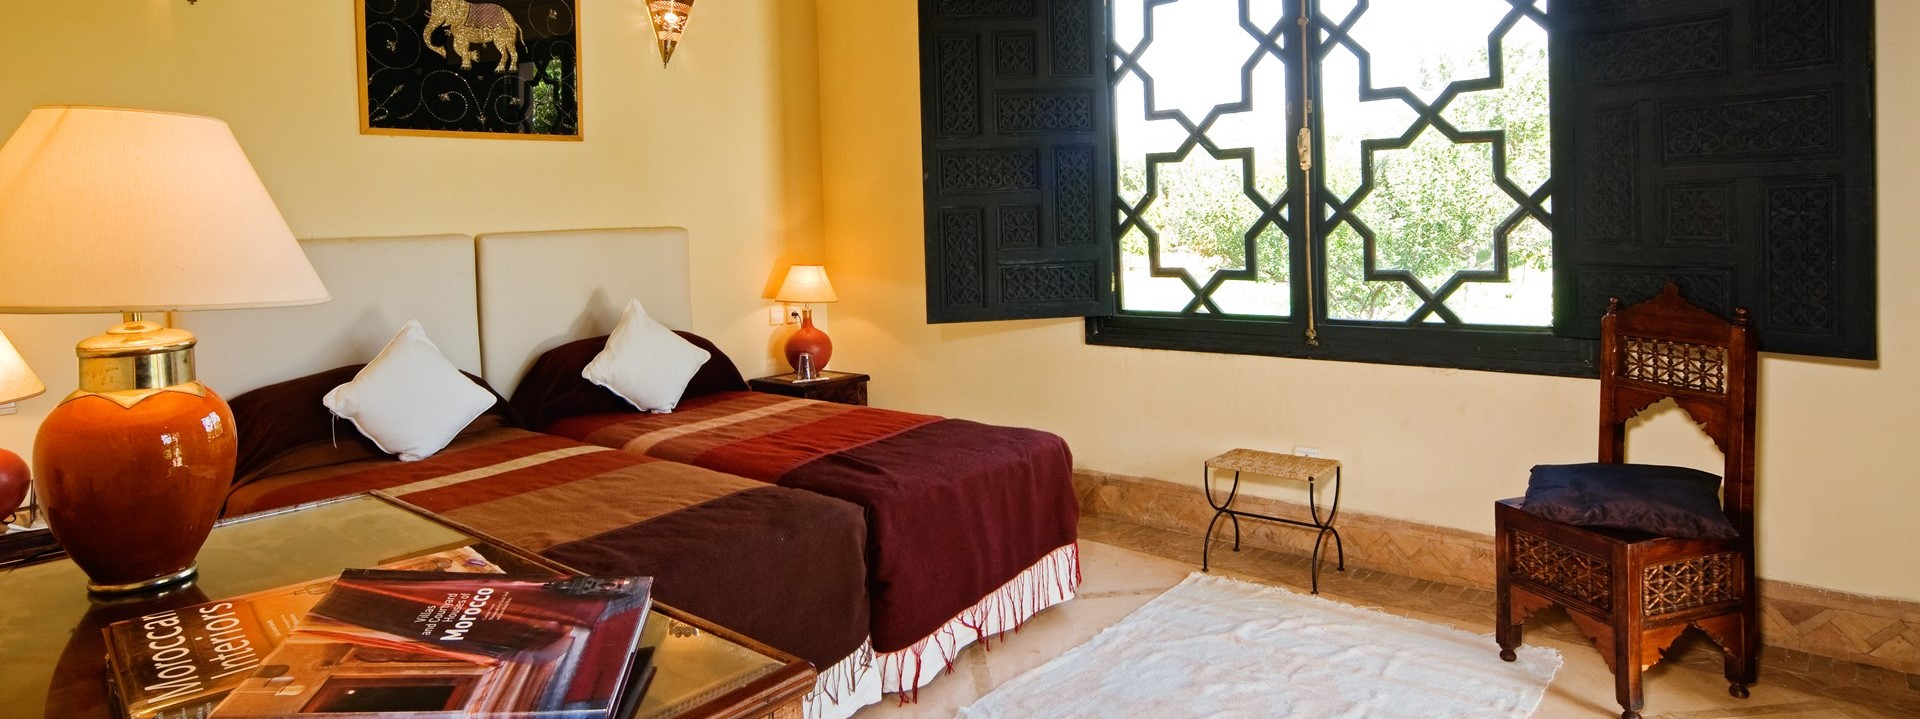 villa-alexandra-marrakech-twin-bedroom-2